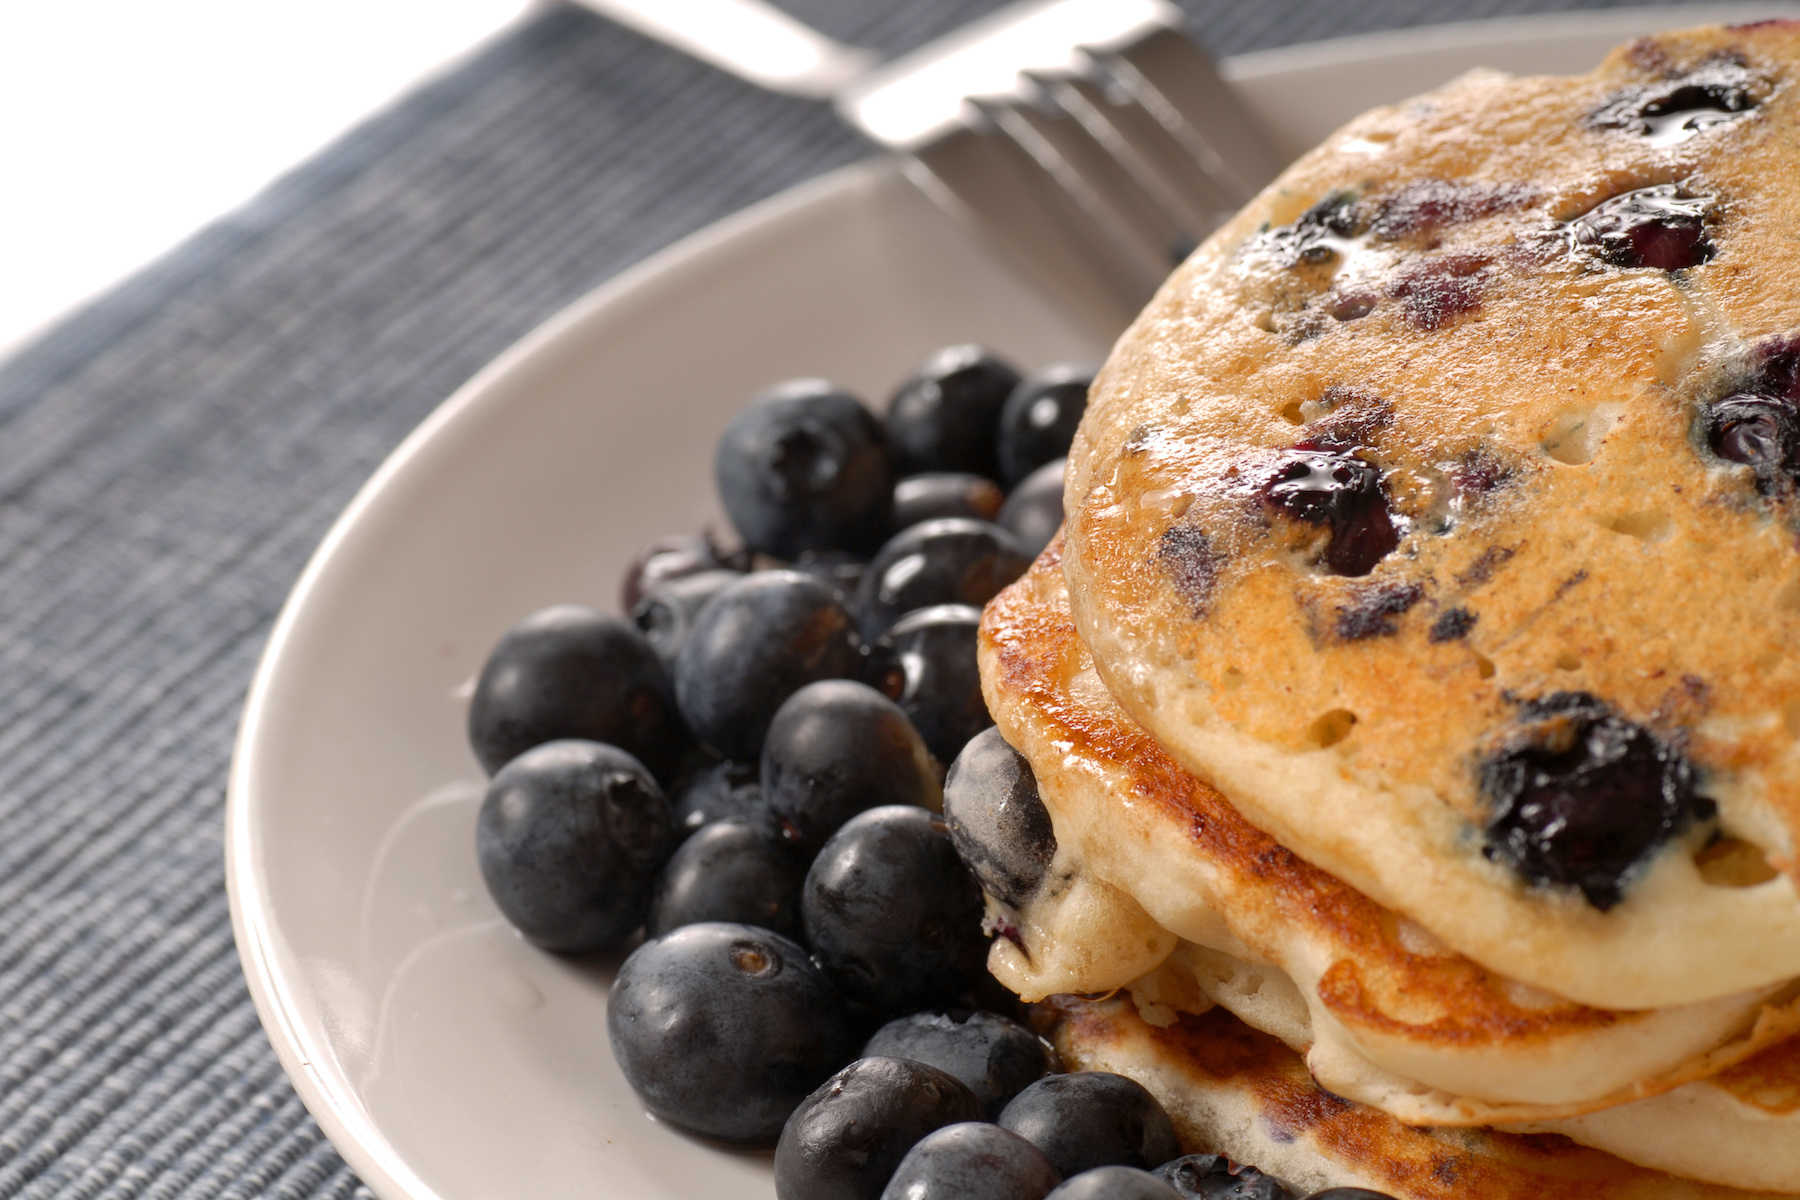 5 Ingredient Blueberry Pancakes from Cooking with Teresa